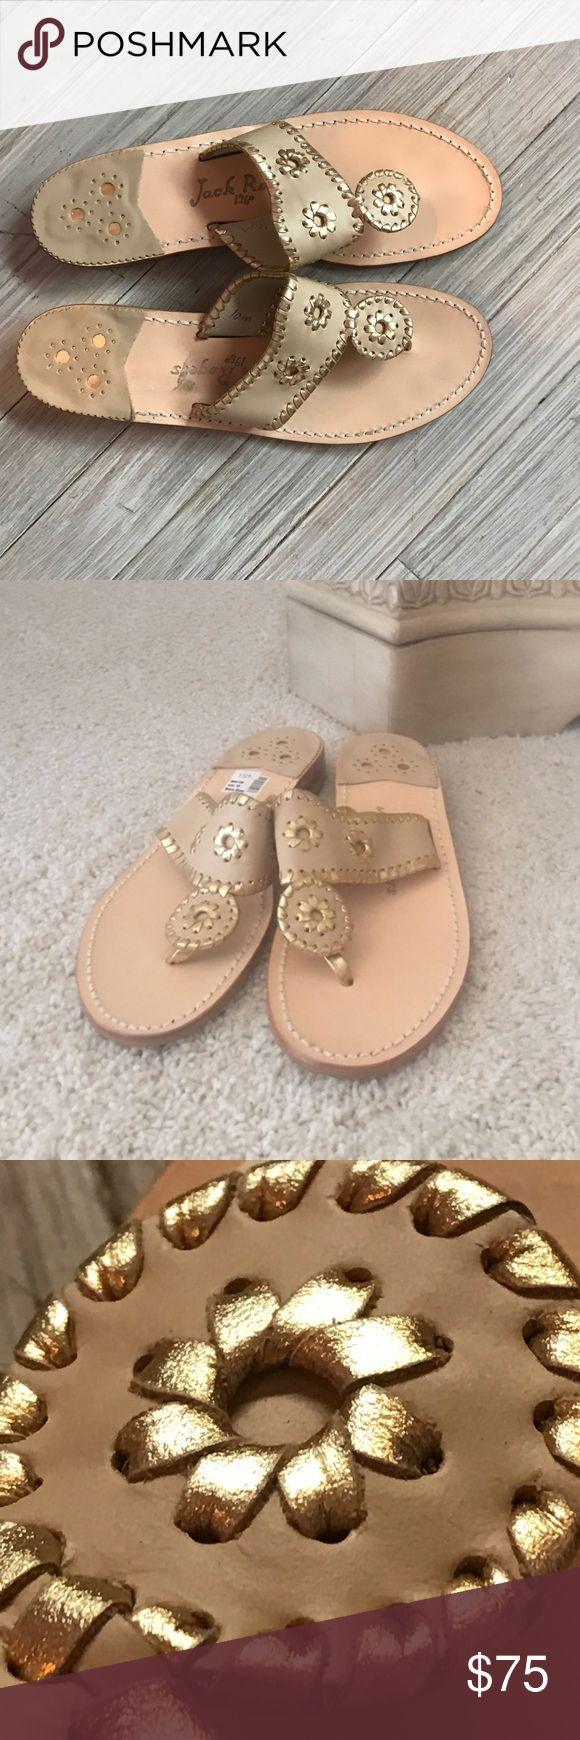 jack rogers thong sandals!!! NWT only worn once. got these and they were too small, so hopefully someone will get more use out of them than i did! such a cute sandal and i'm so bummed they didn't work out for me:( go great with jeans, dresses, or even just a casual day at the beach or night out. 💕 Jack Rogers Shoes Sandals